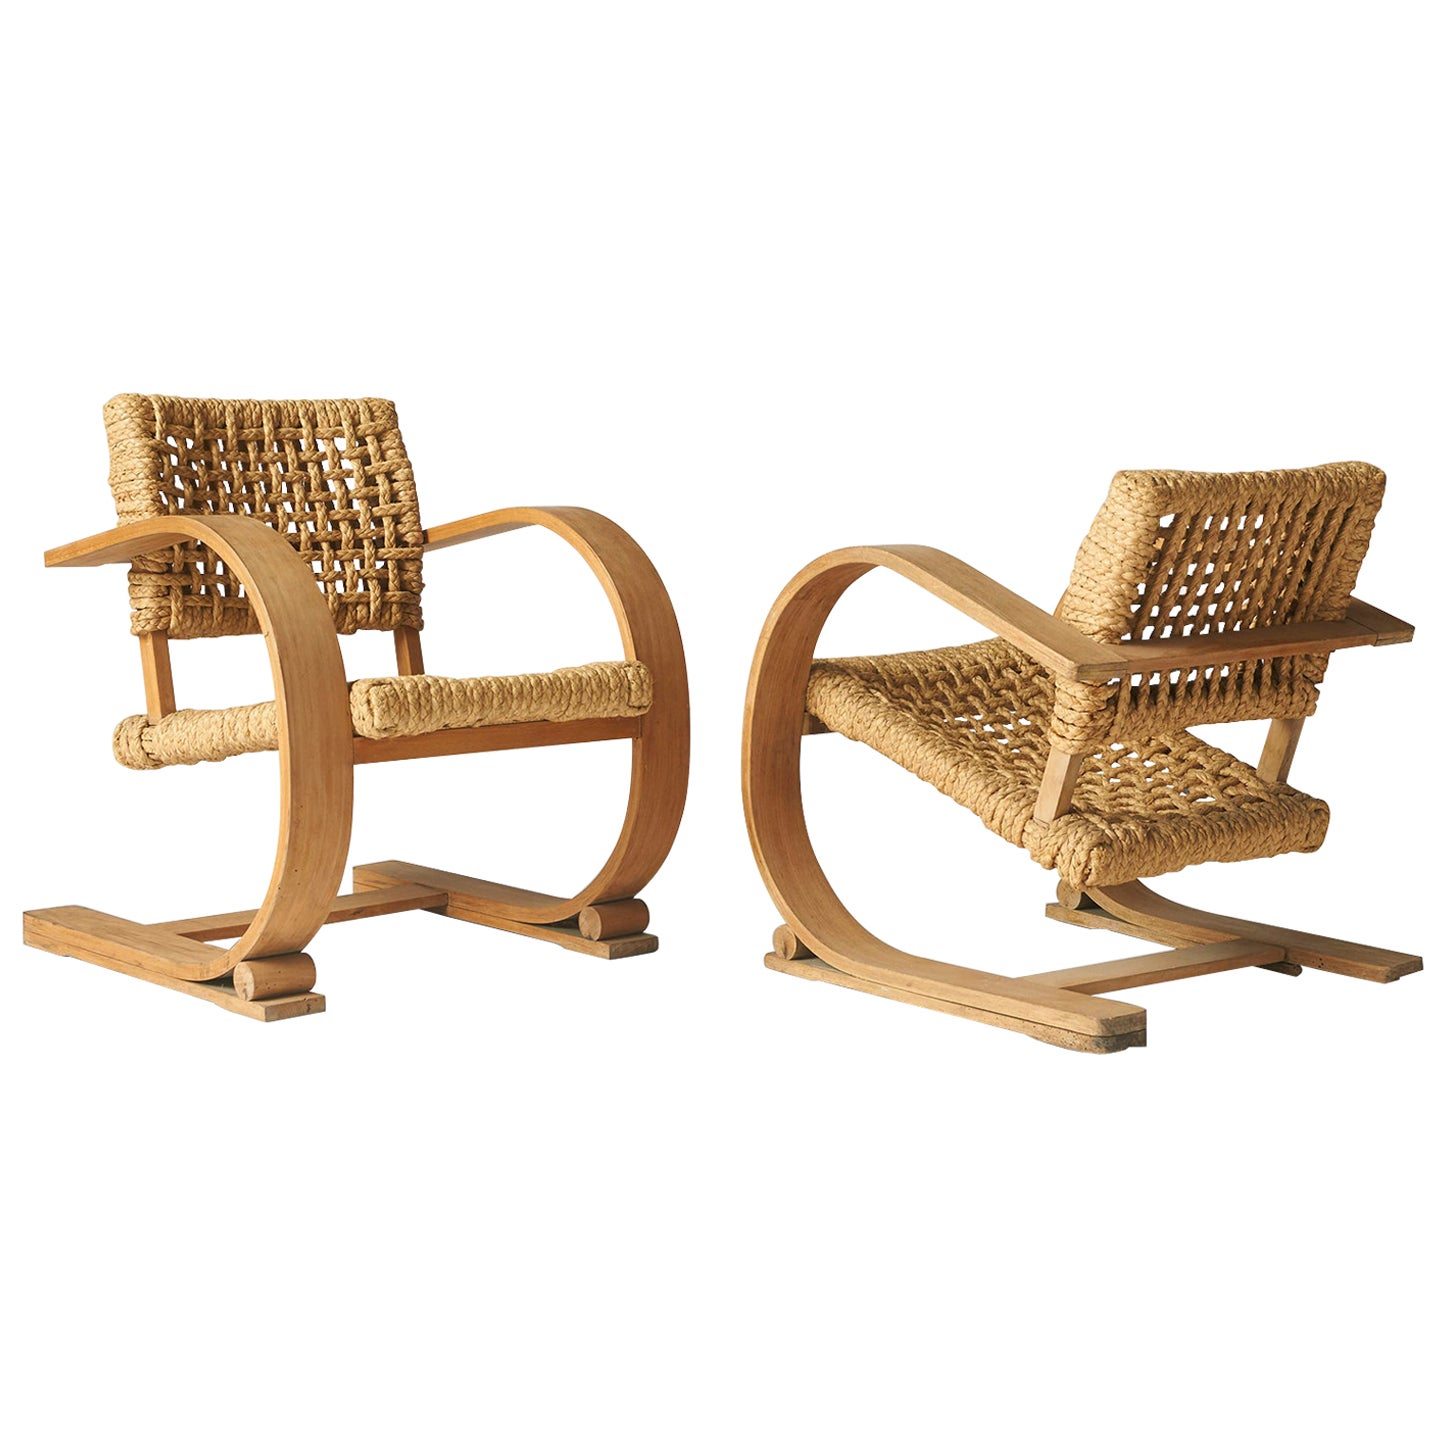 Audoux-Minet, Rope Chairs